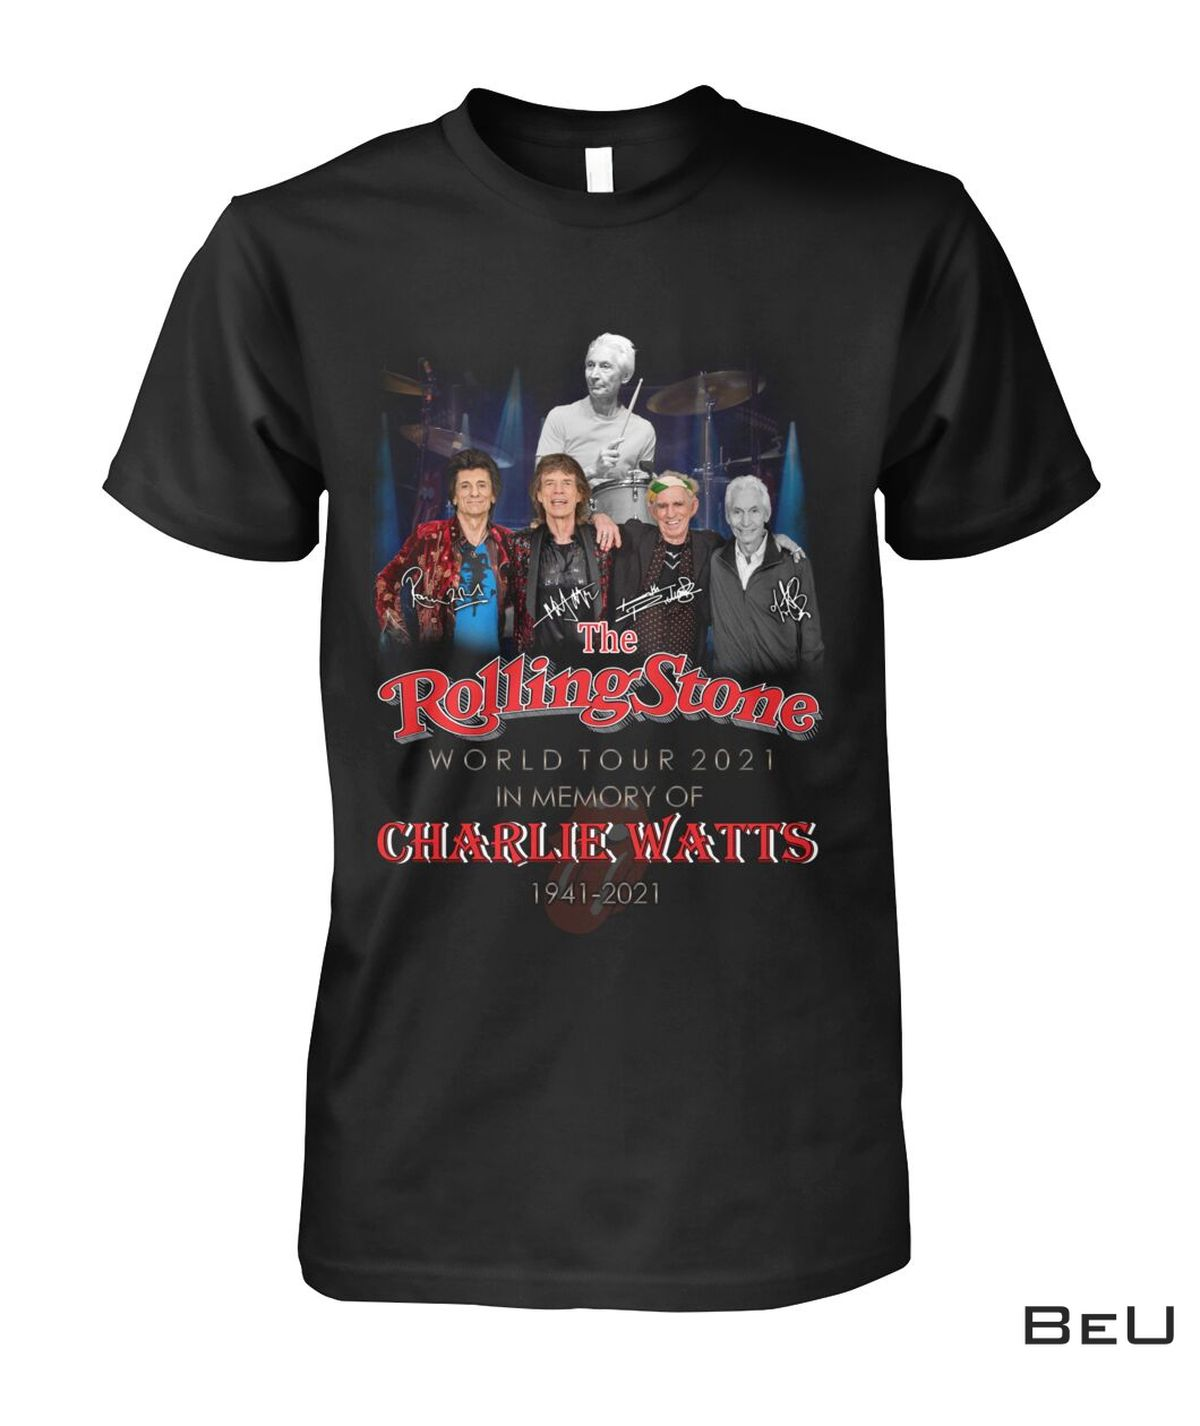 Rolling Stones World Tour 2021 In The Memory Of Charlie Watts Shirt, hoodie, tank top